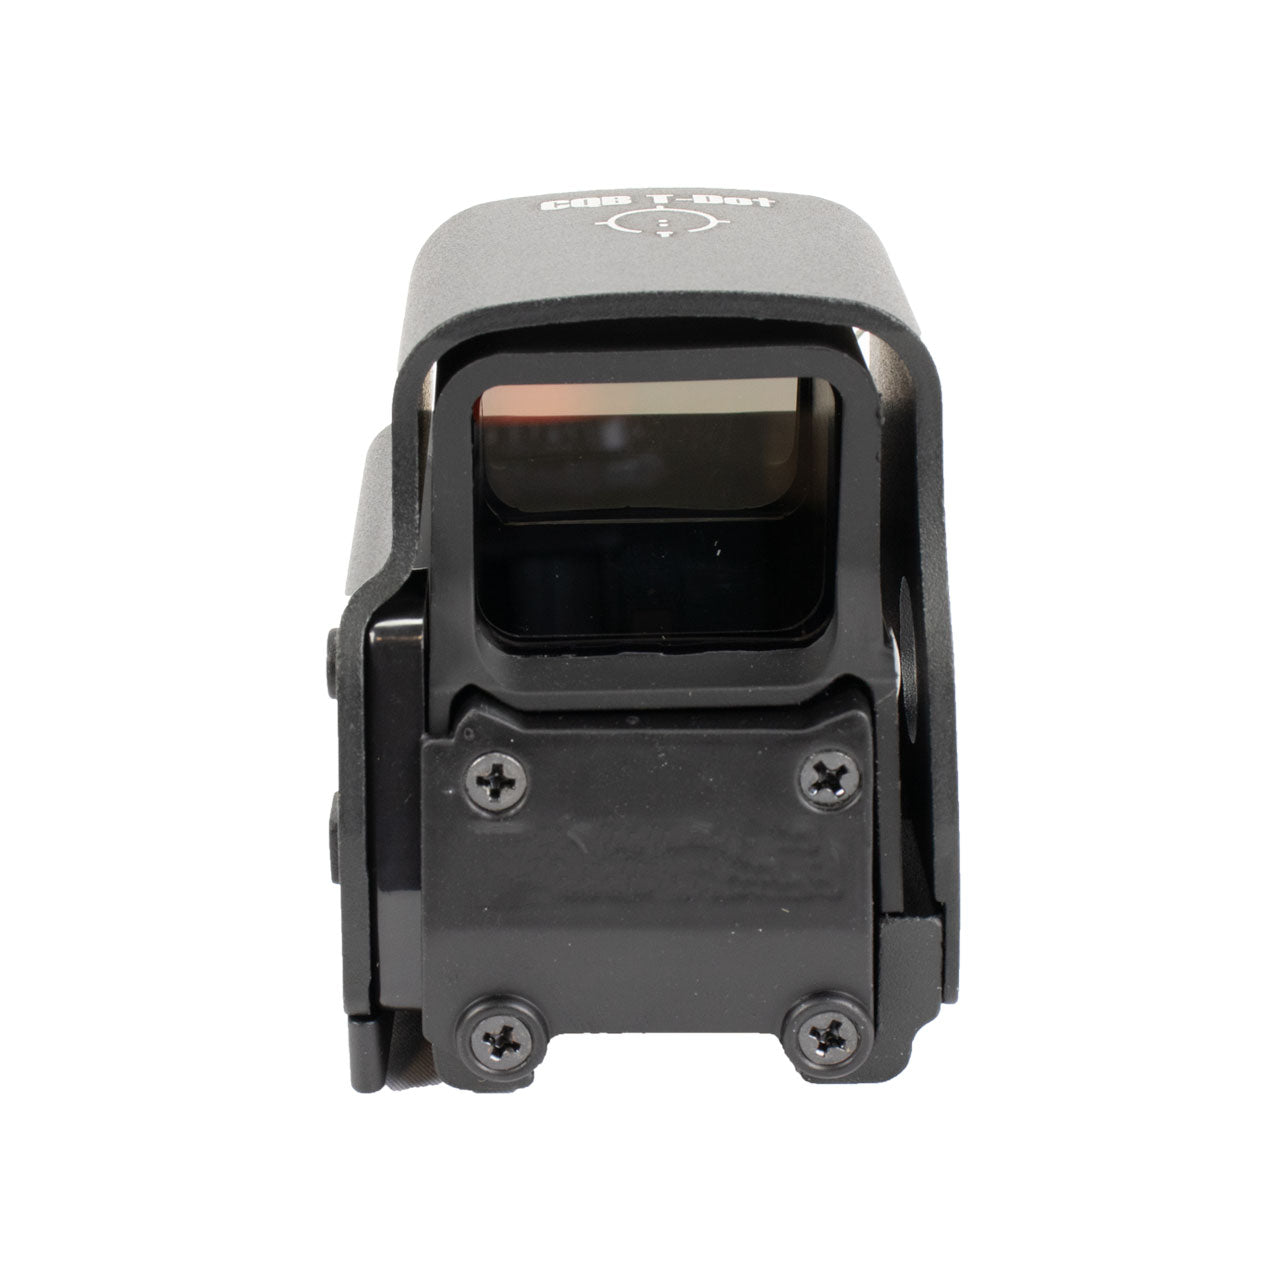 EOT XPS3 Red/Green Dot Sight 556 Style Side Buttons